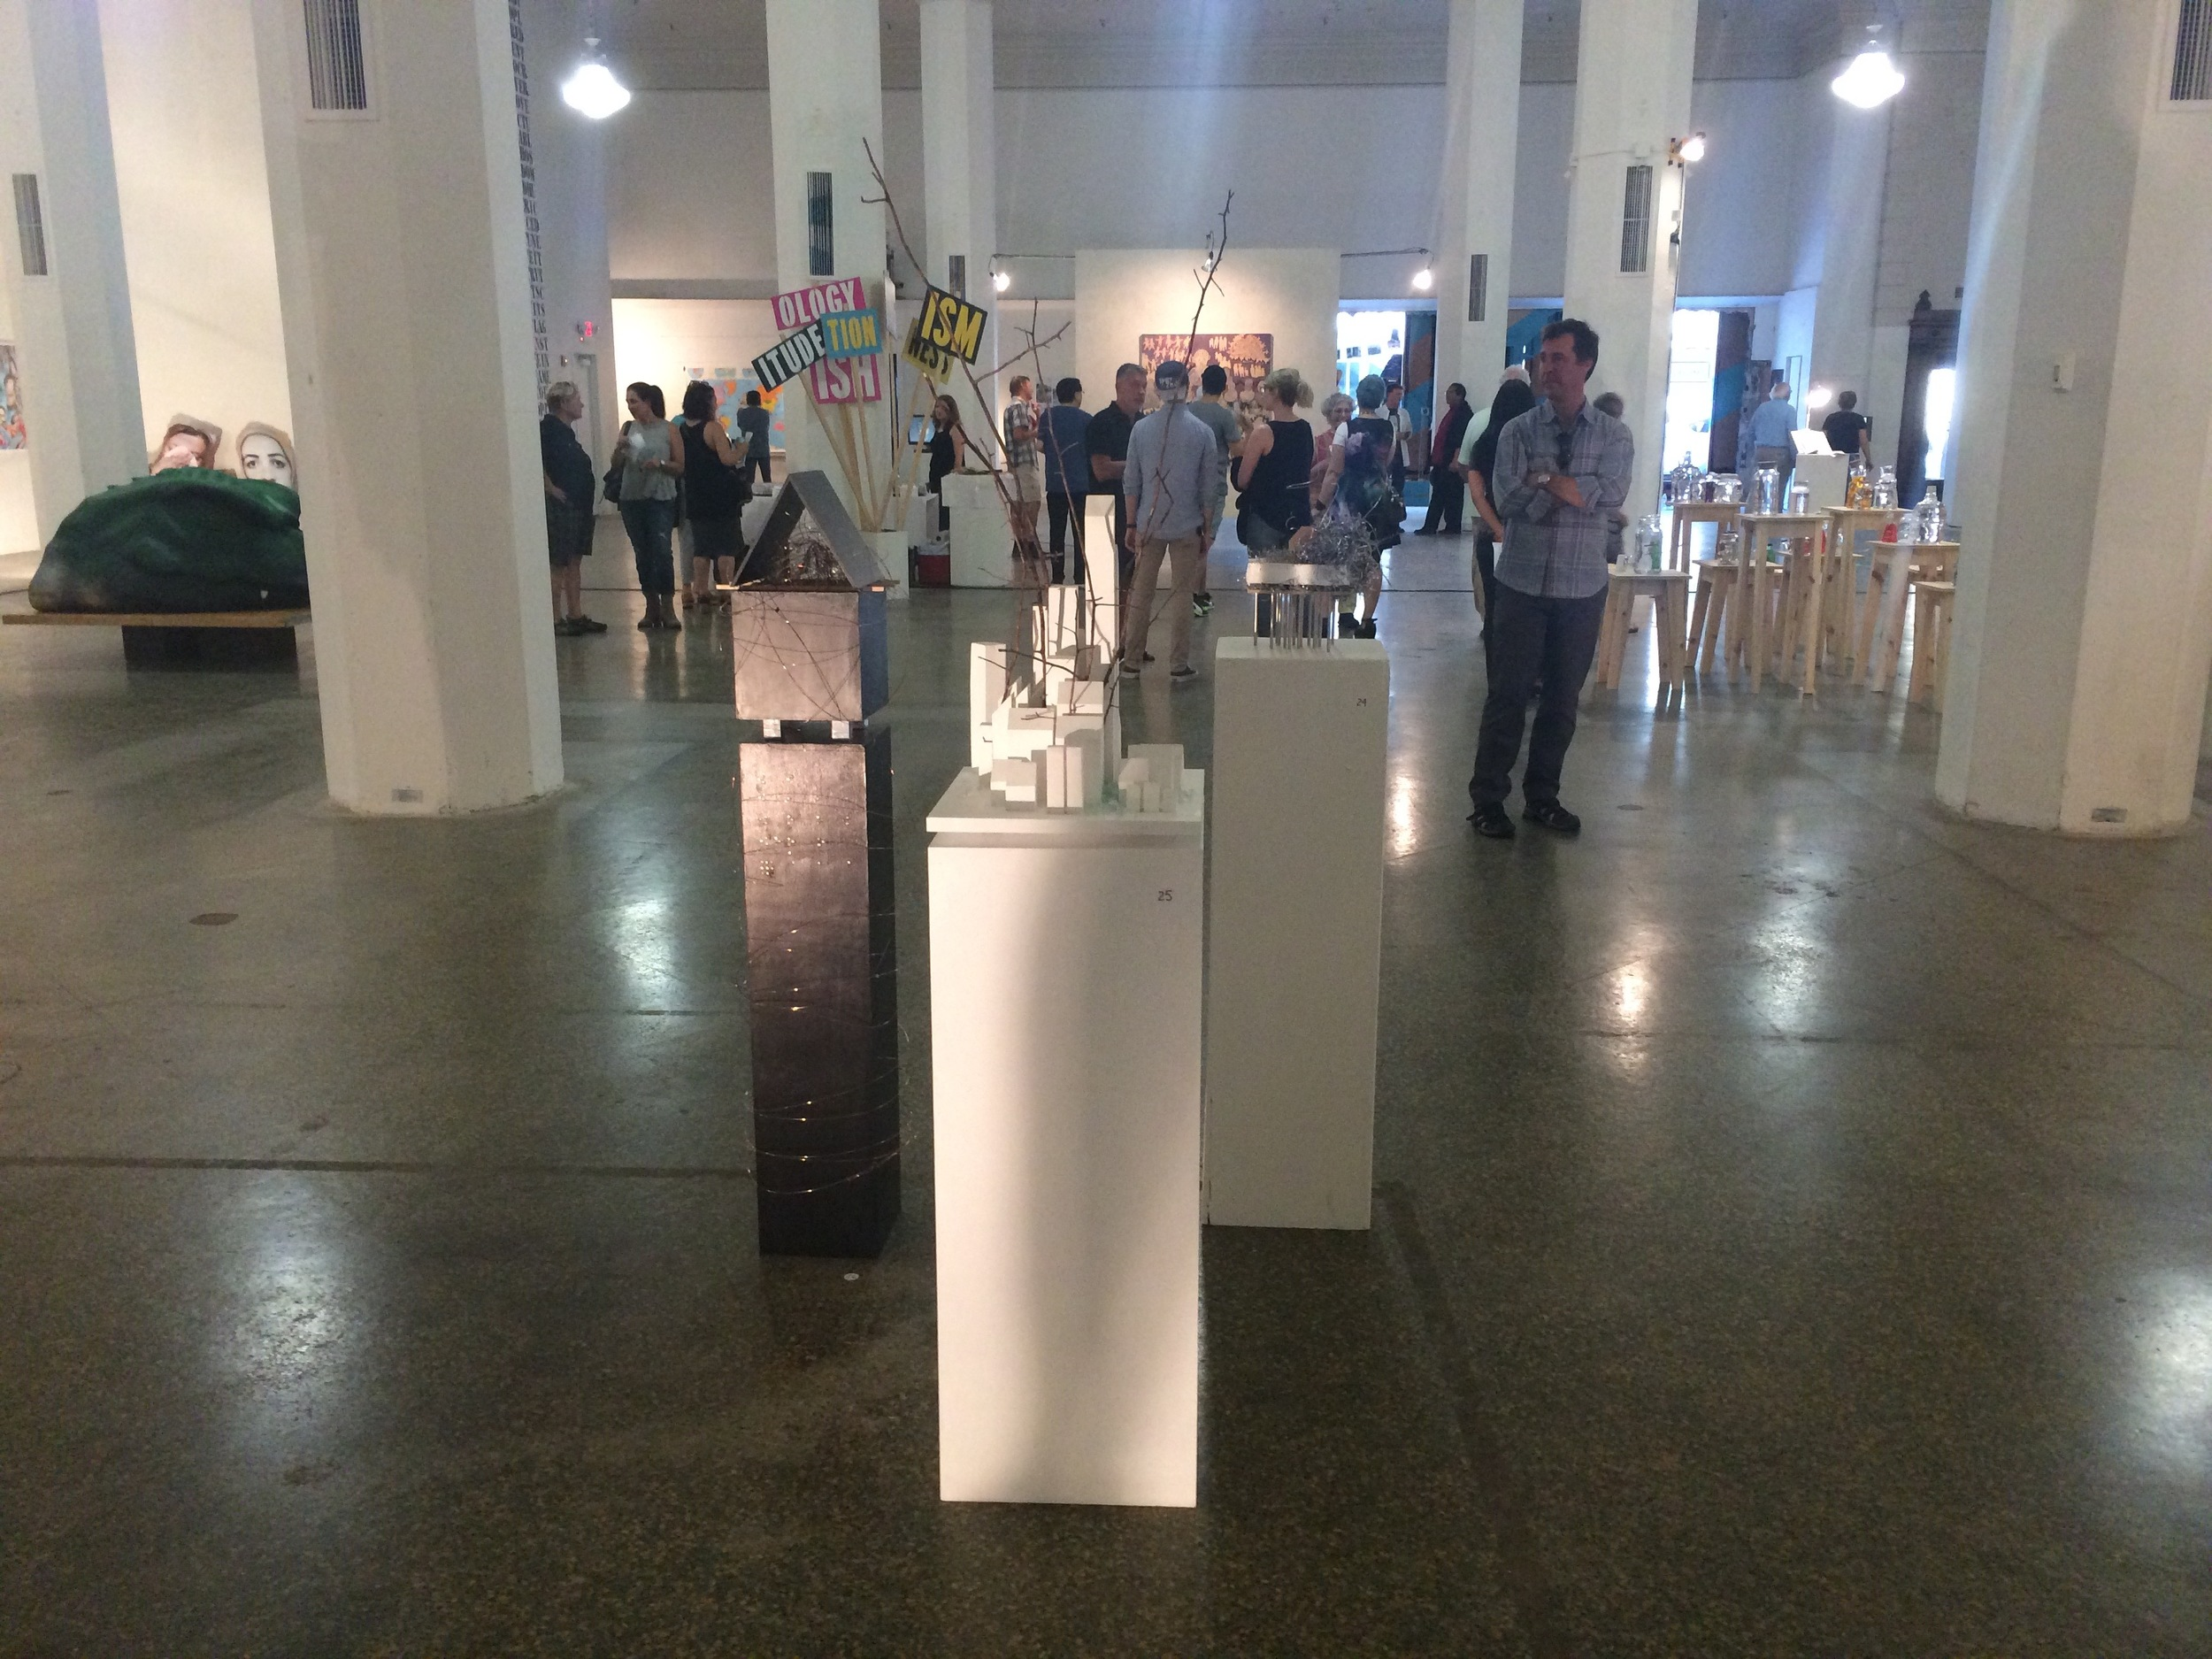 Above, my three sculptures in Re:Formation in Toledo. Left to right: Reactor, The City, Excerpt #6. Below are some more images from the opening reception.